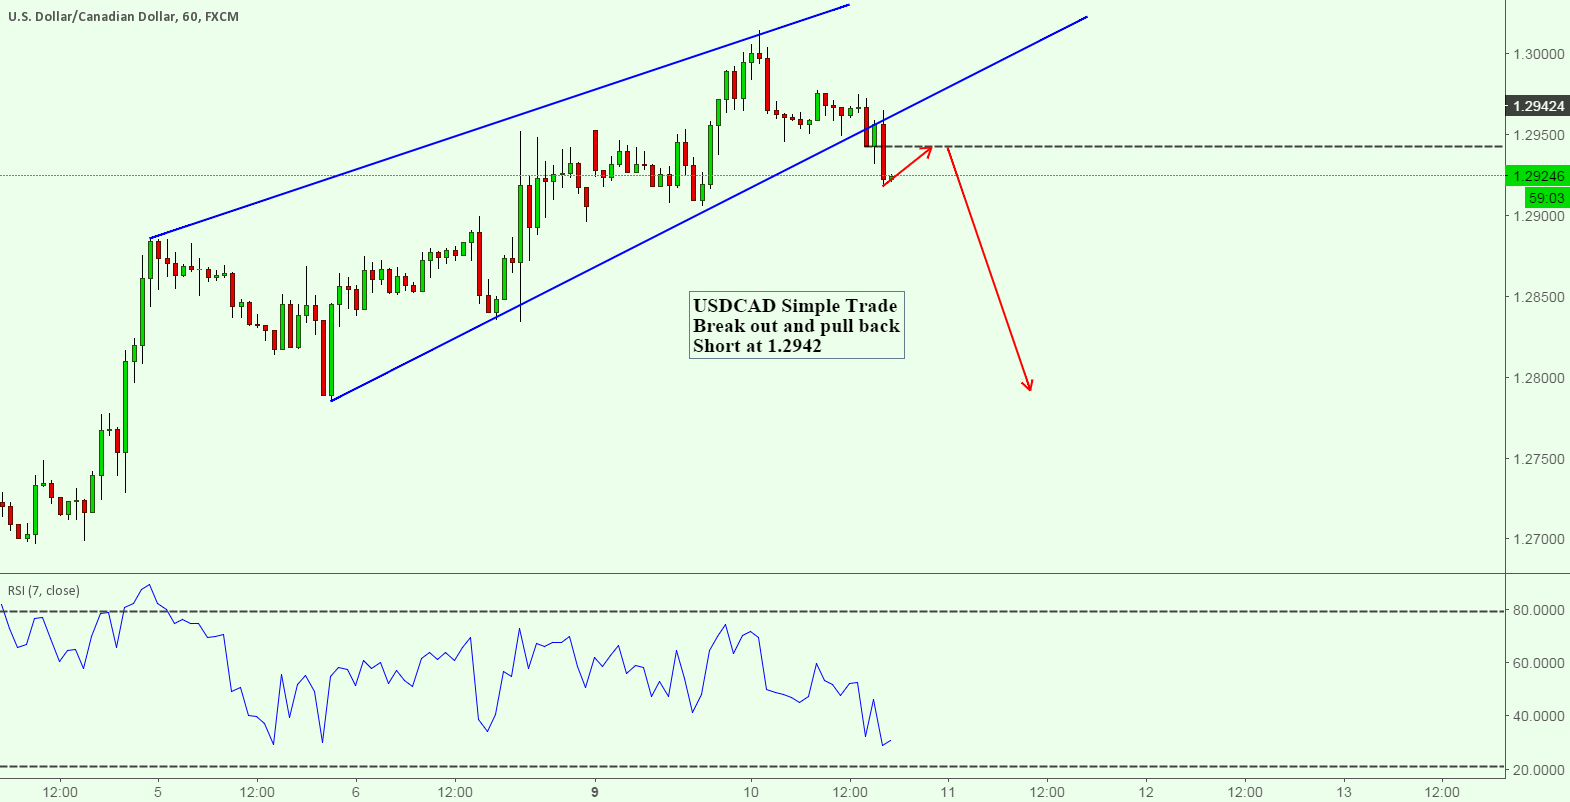 USDCAD Simple Trade